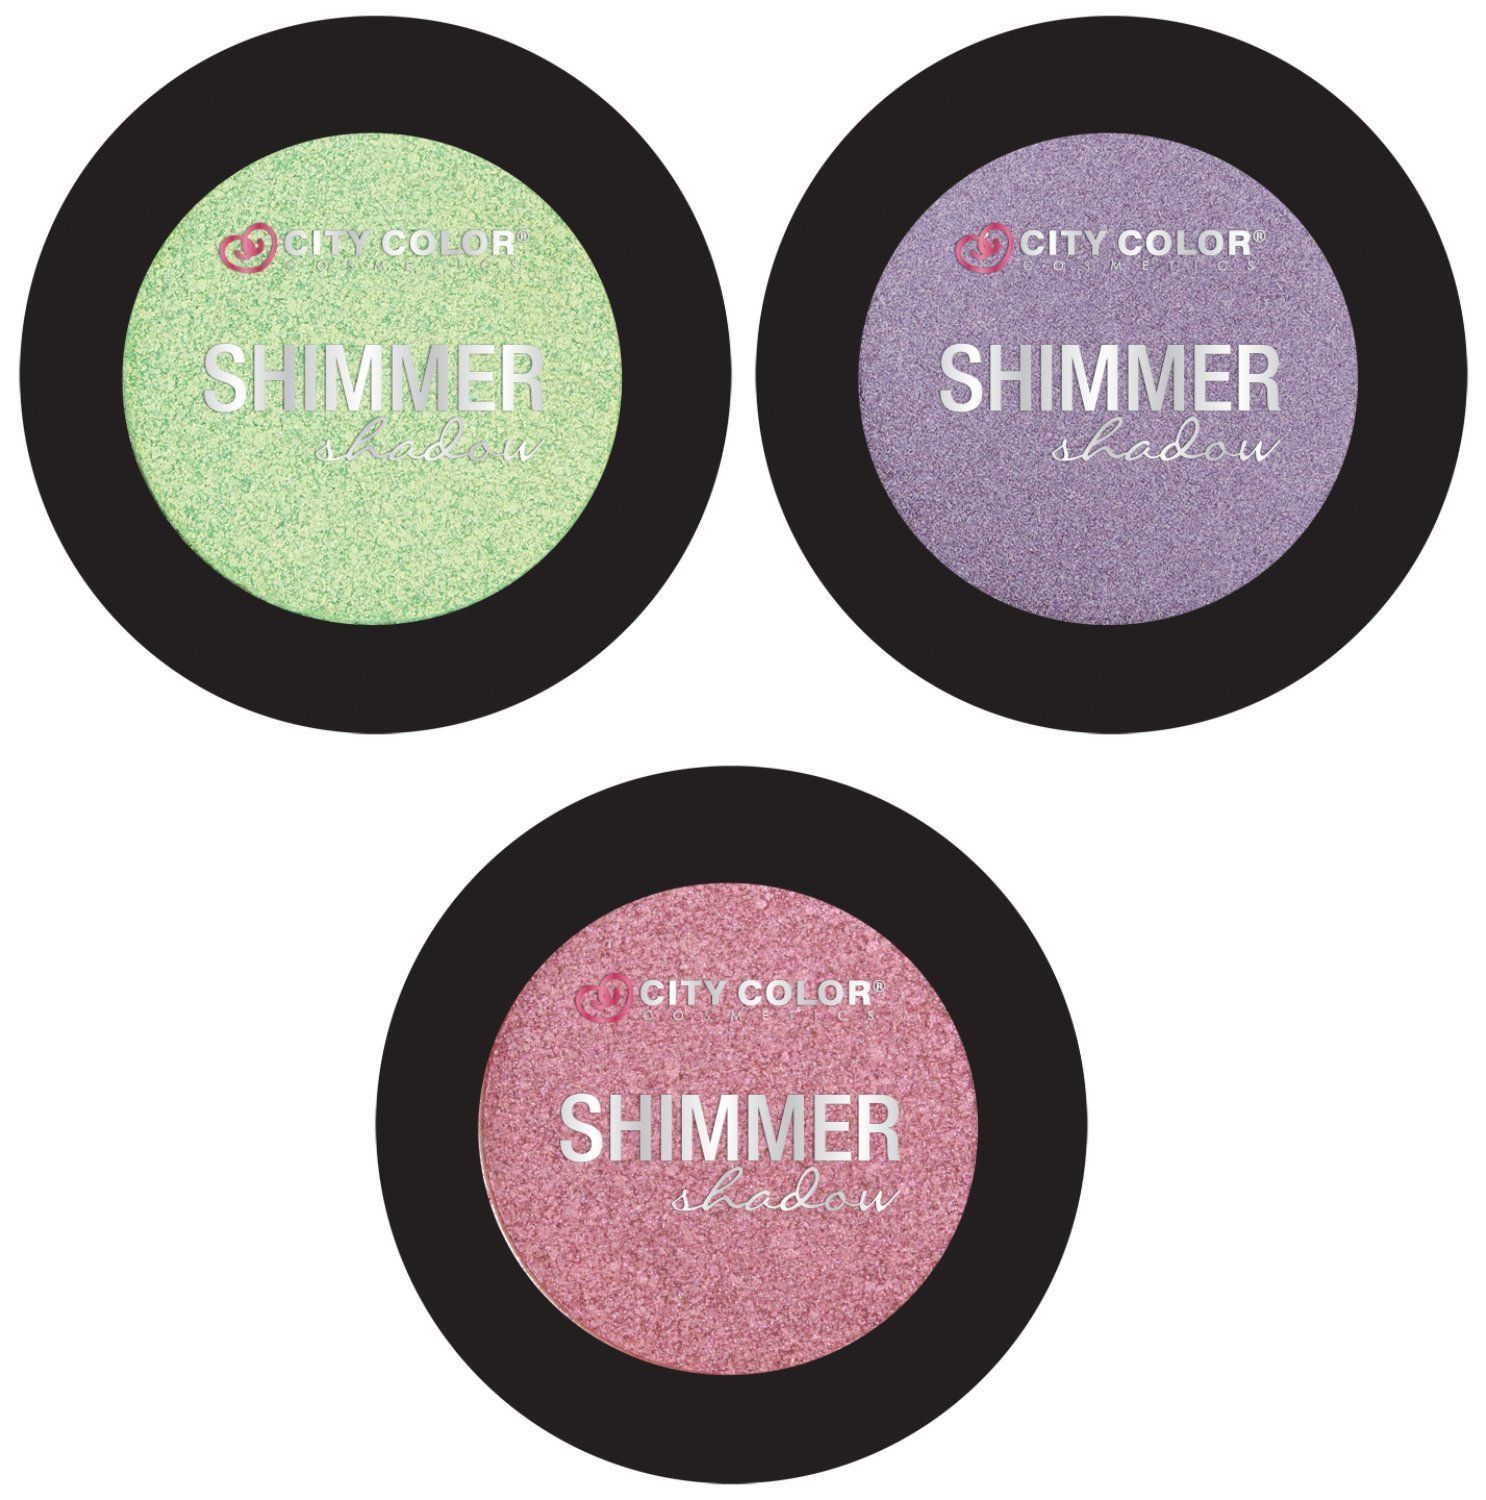 City Color Shimmer Shadow/3 Pack Eyeshadow (Hint of Mint